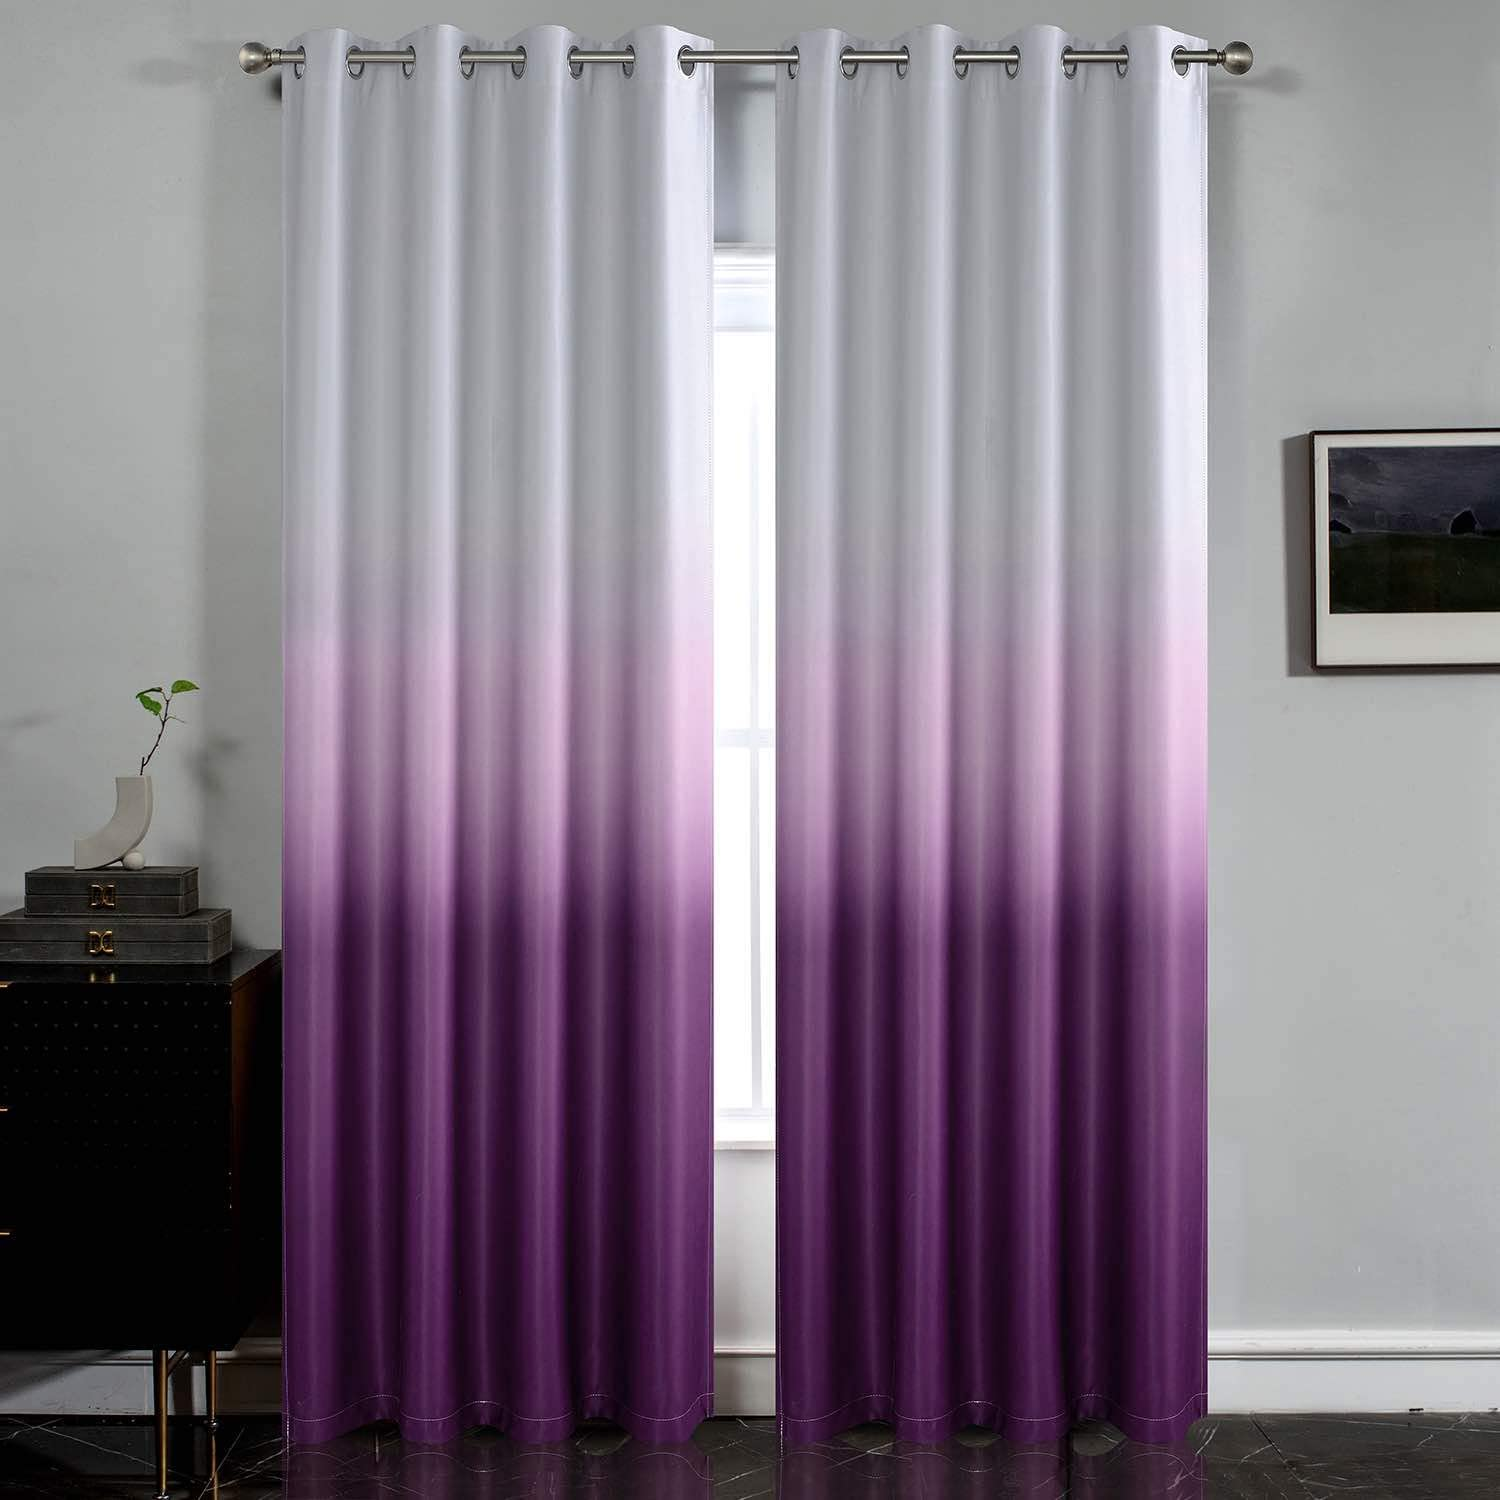 SimpleHome Gradient Color Ombre Room Darkening Curtains Blackout Purple Thermal Insulated Eyelet Top Panels Grommet Window Drapes for Living Room/Bedroom, Purple,52x84 inches